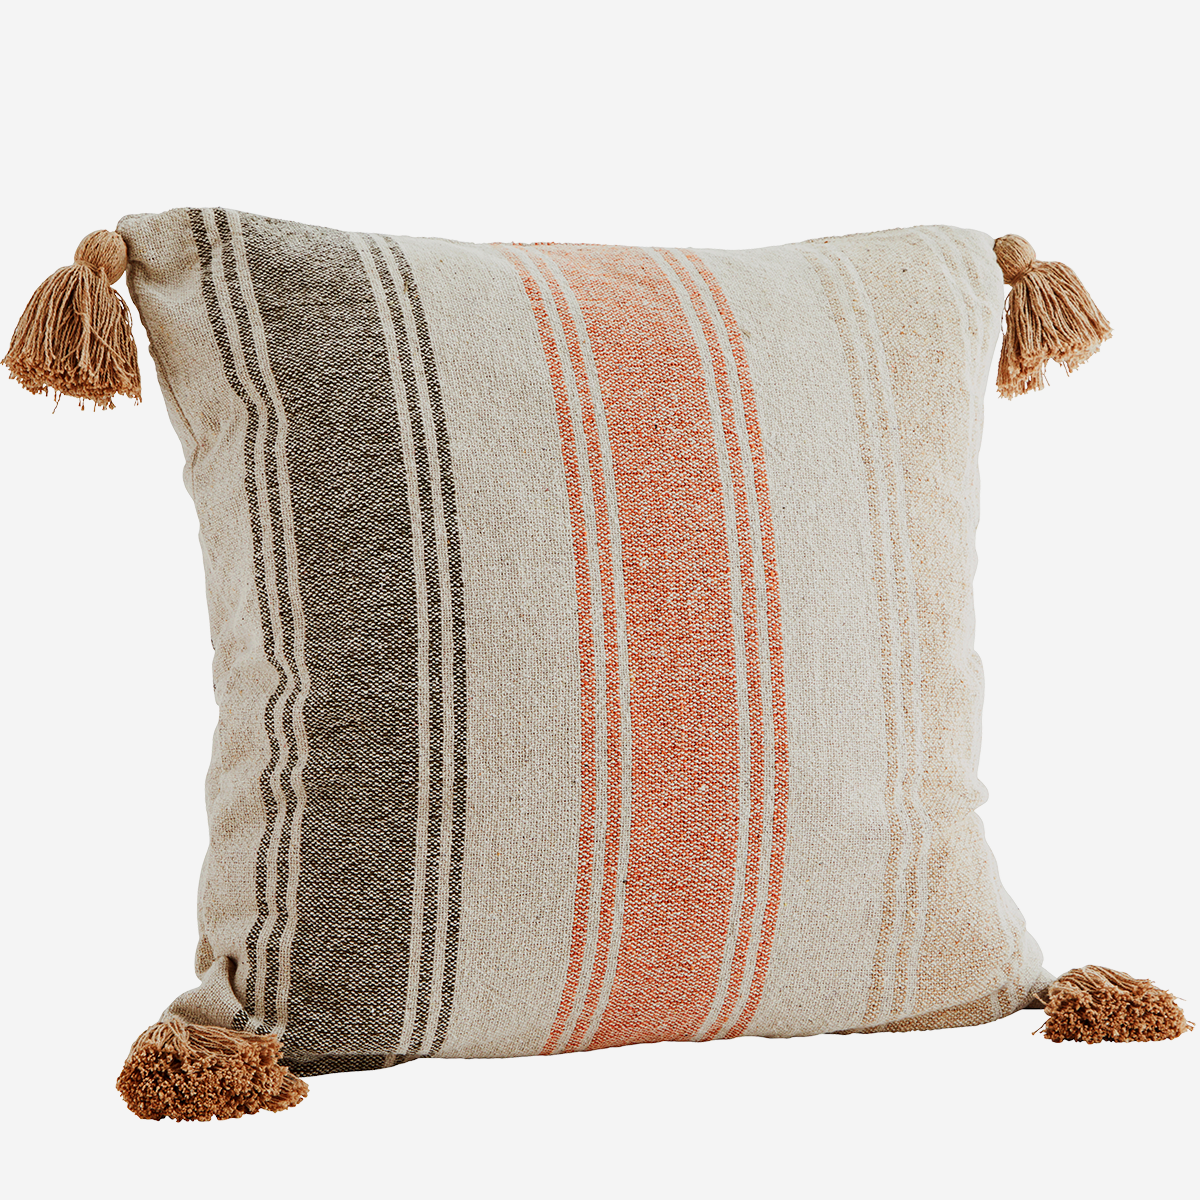 Striped cushion cover w/ tassels